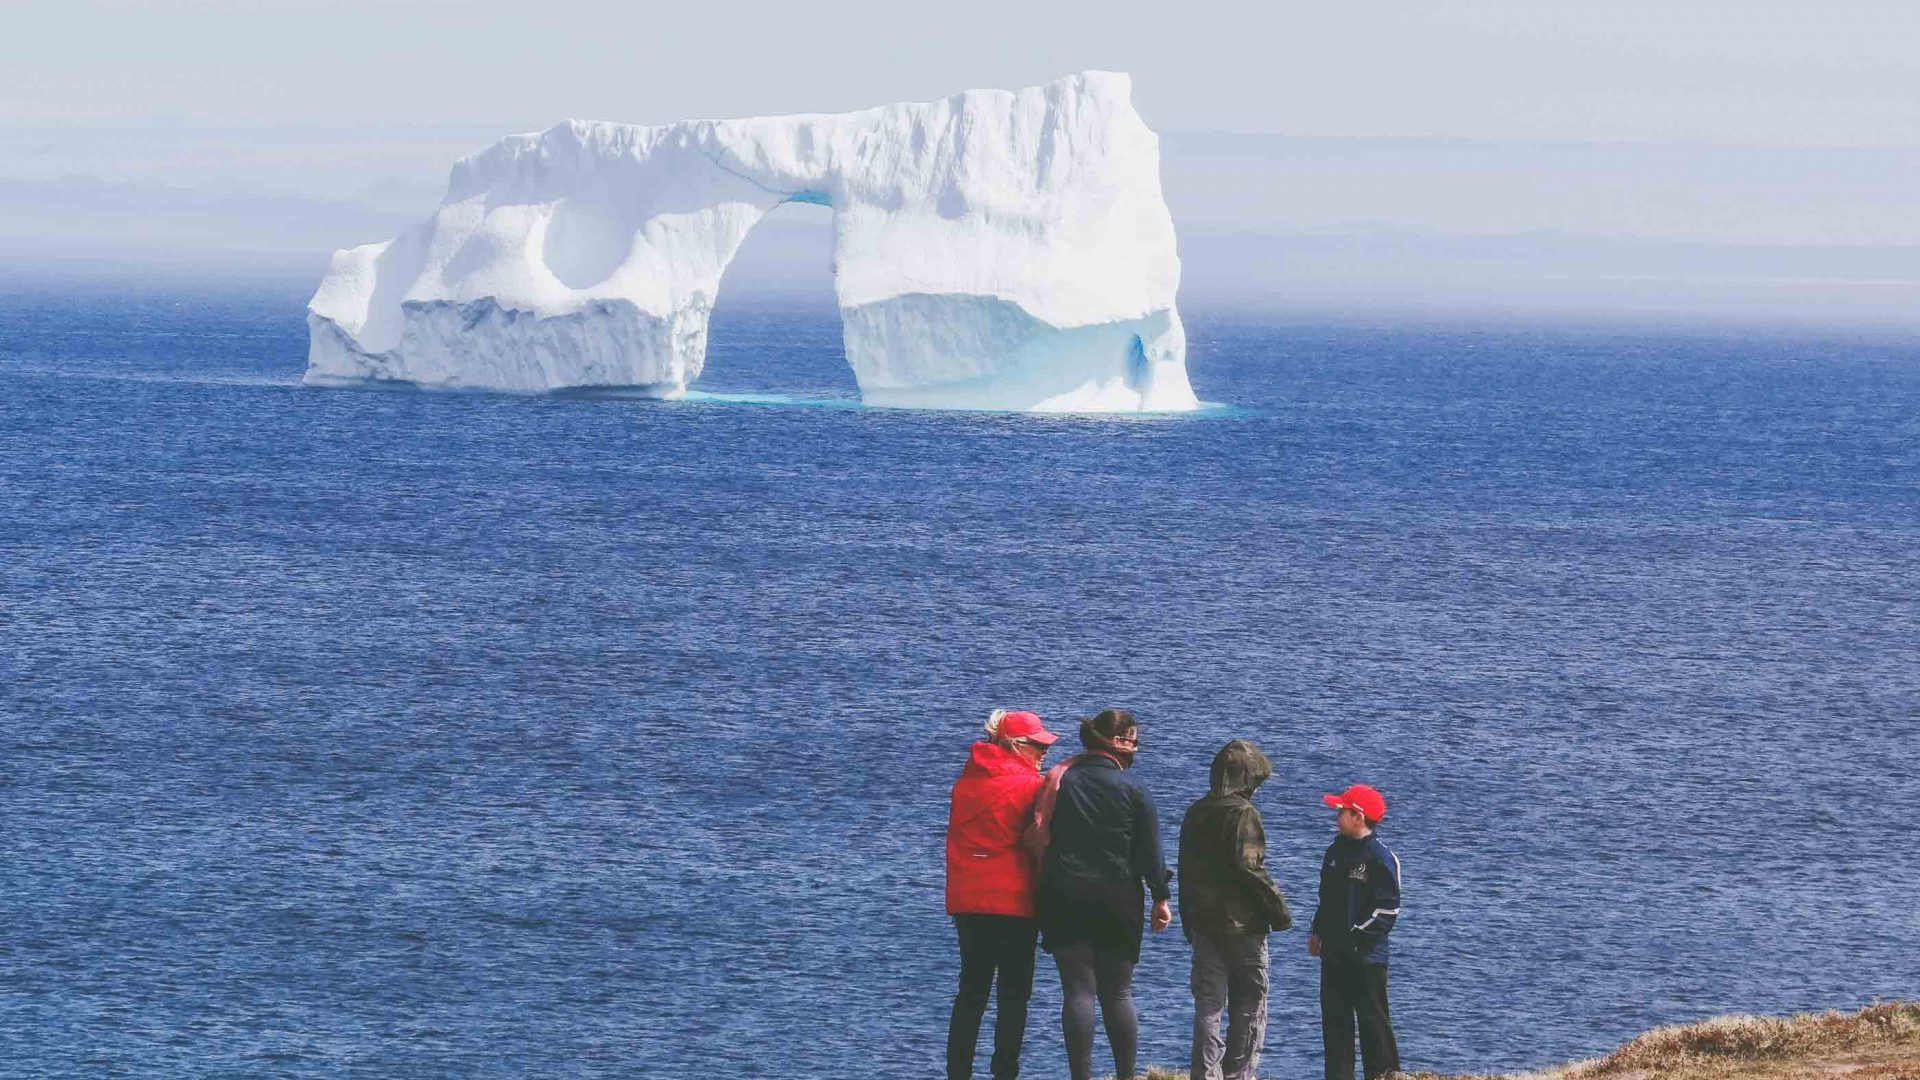 Tourists watch the icebergs float through the waters of Newfoundland.